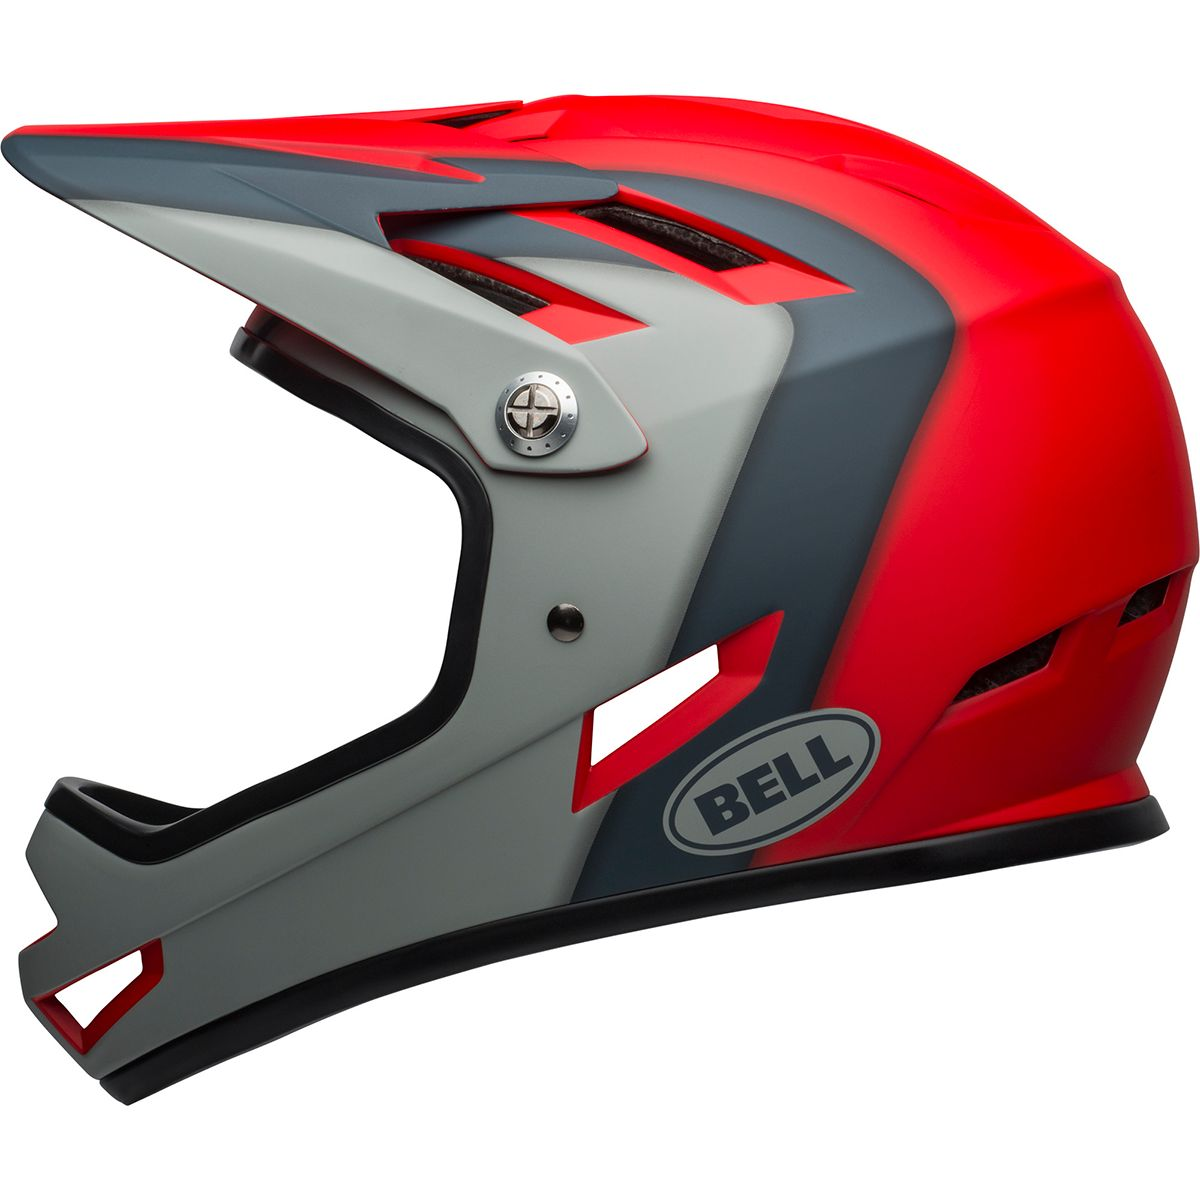 Bell Full Face Helmet >> Buy Bell Sanction Mtb Full Face Helmet Rose Bikes